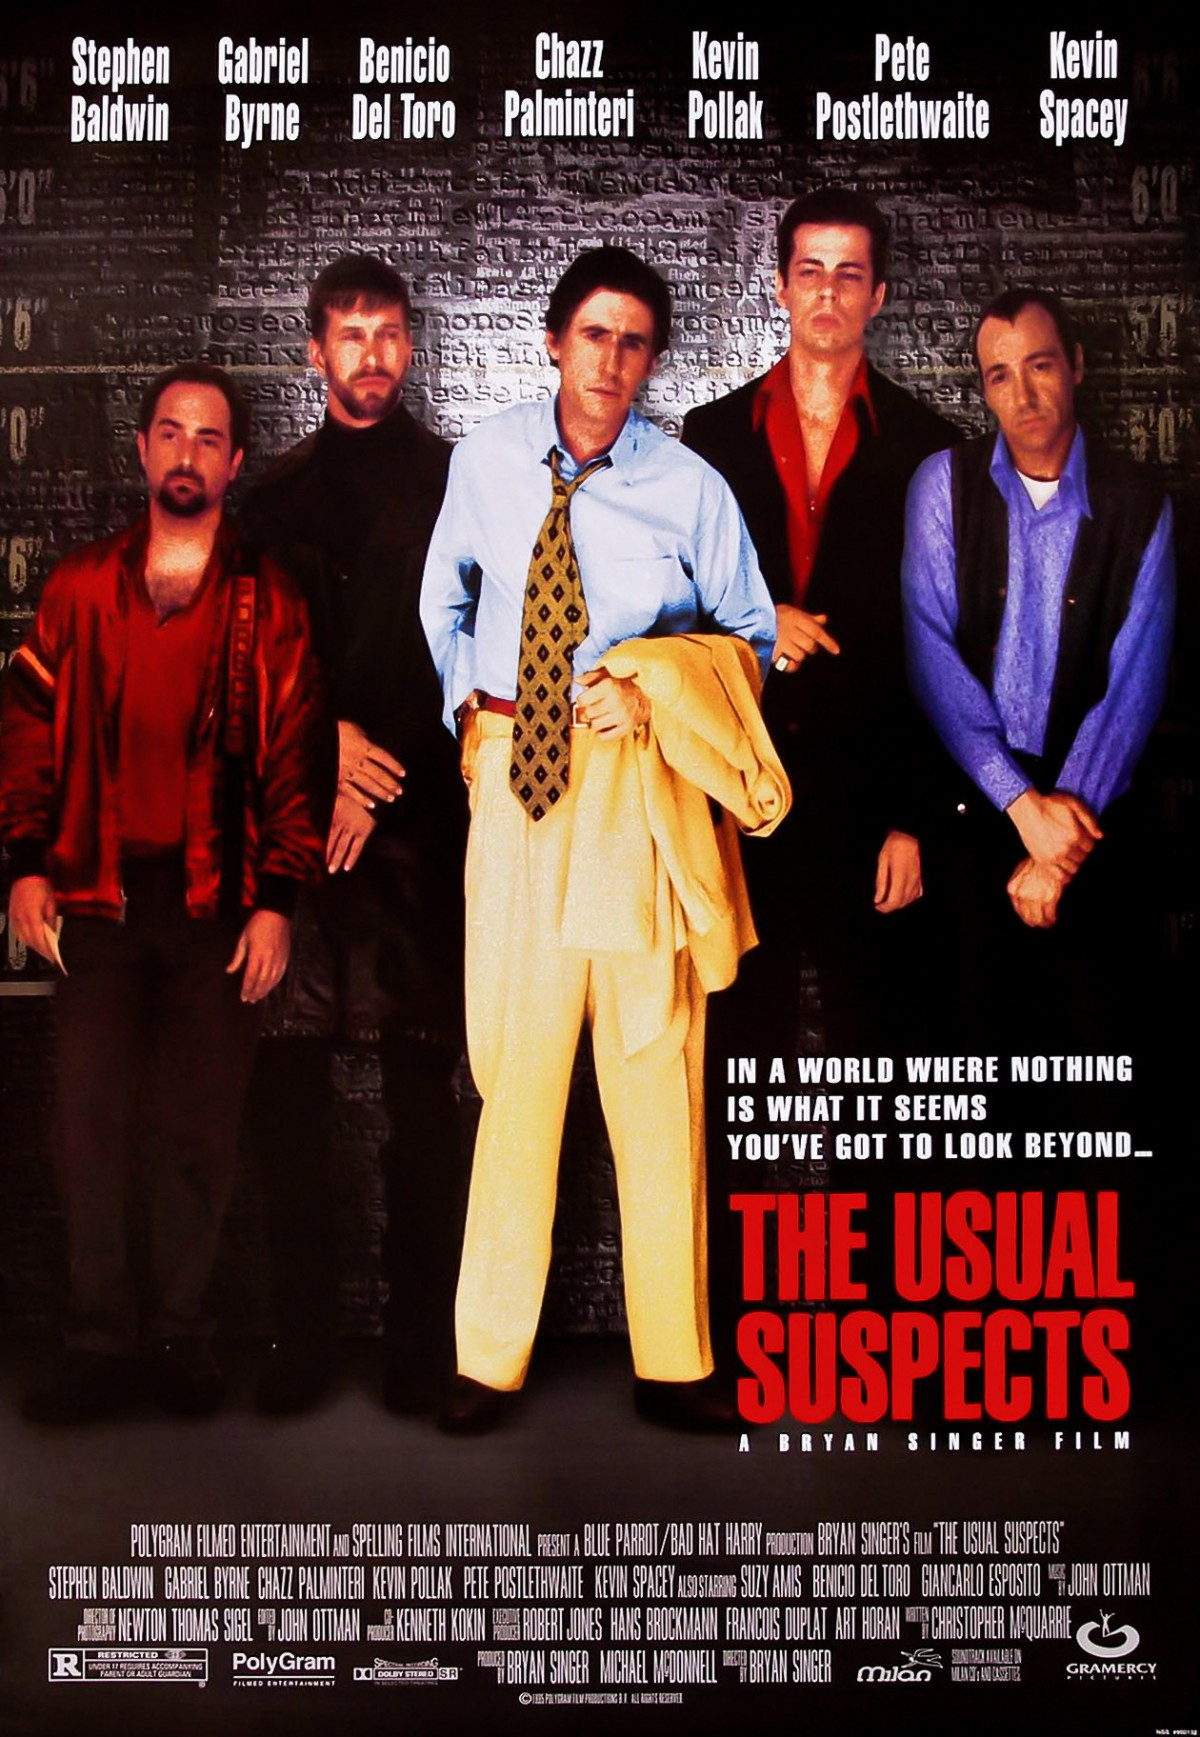 15. Usual Suspects (1995)